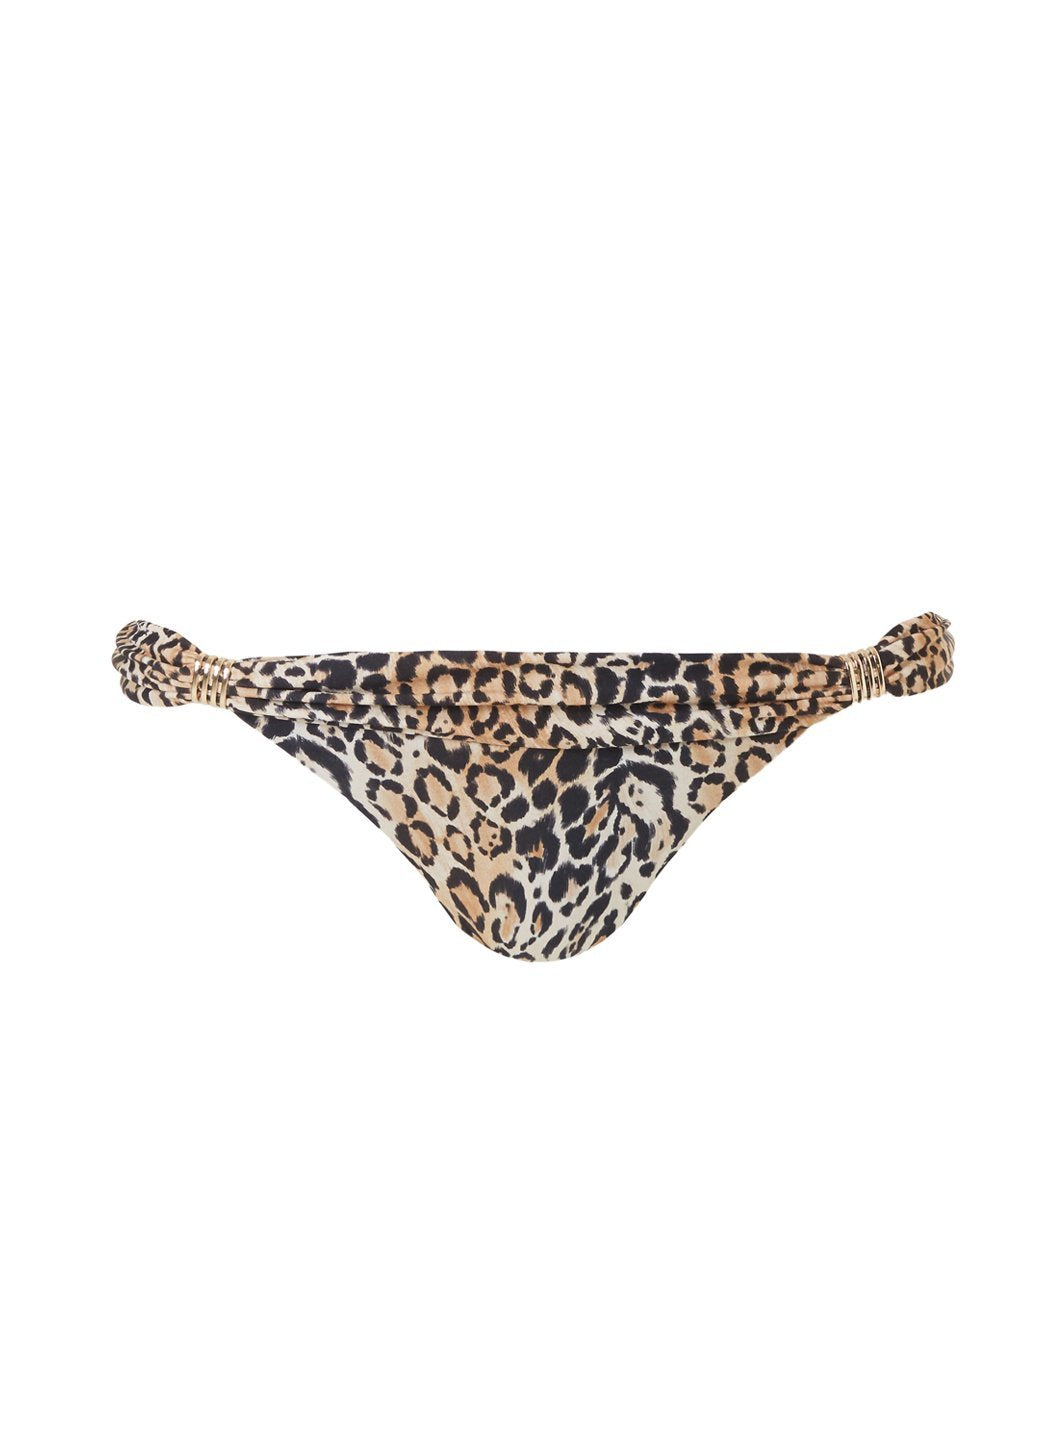 grenada-cheetah-bikini-bottom - Cut-Out